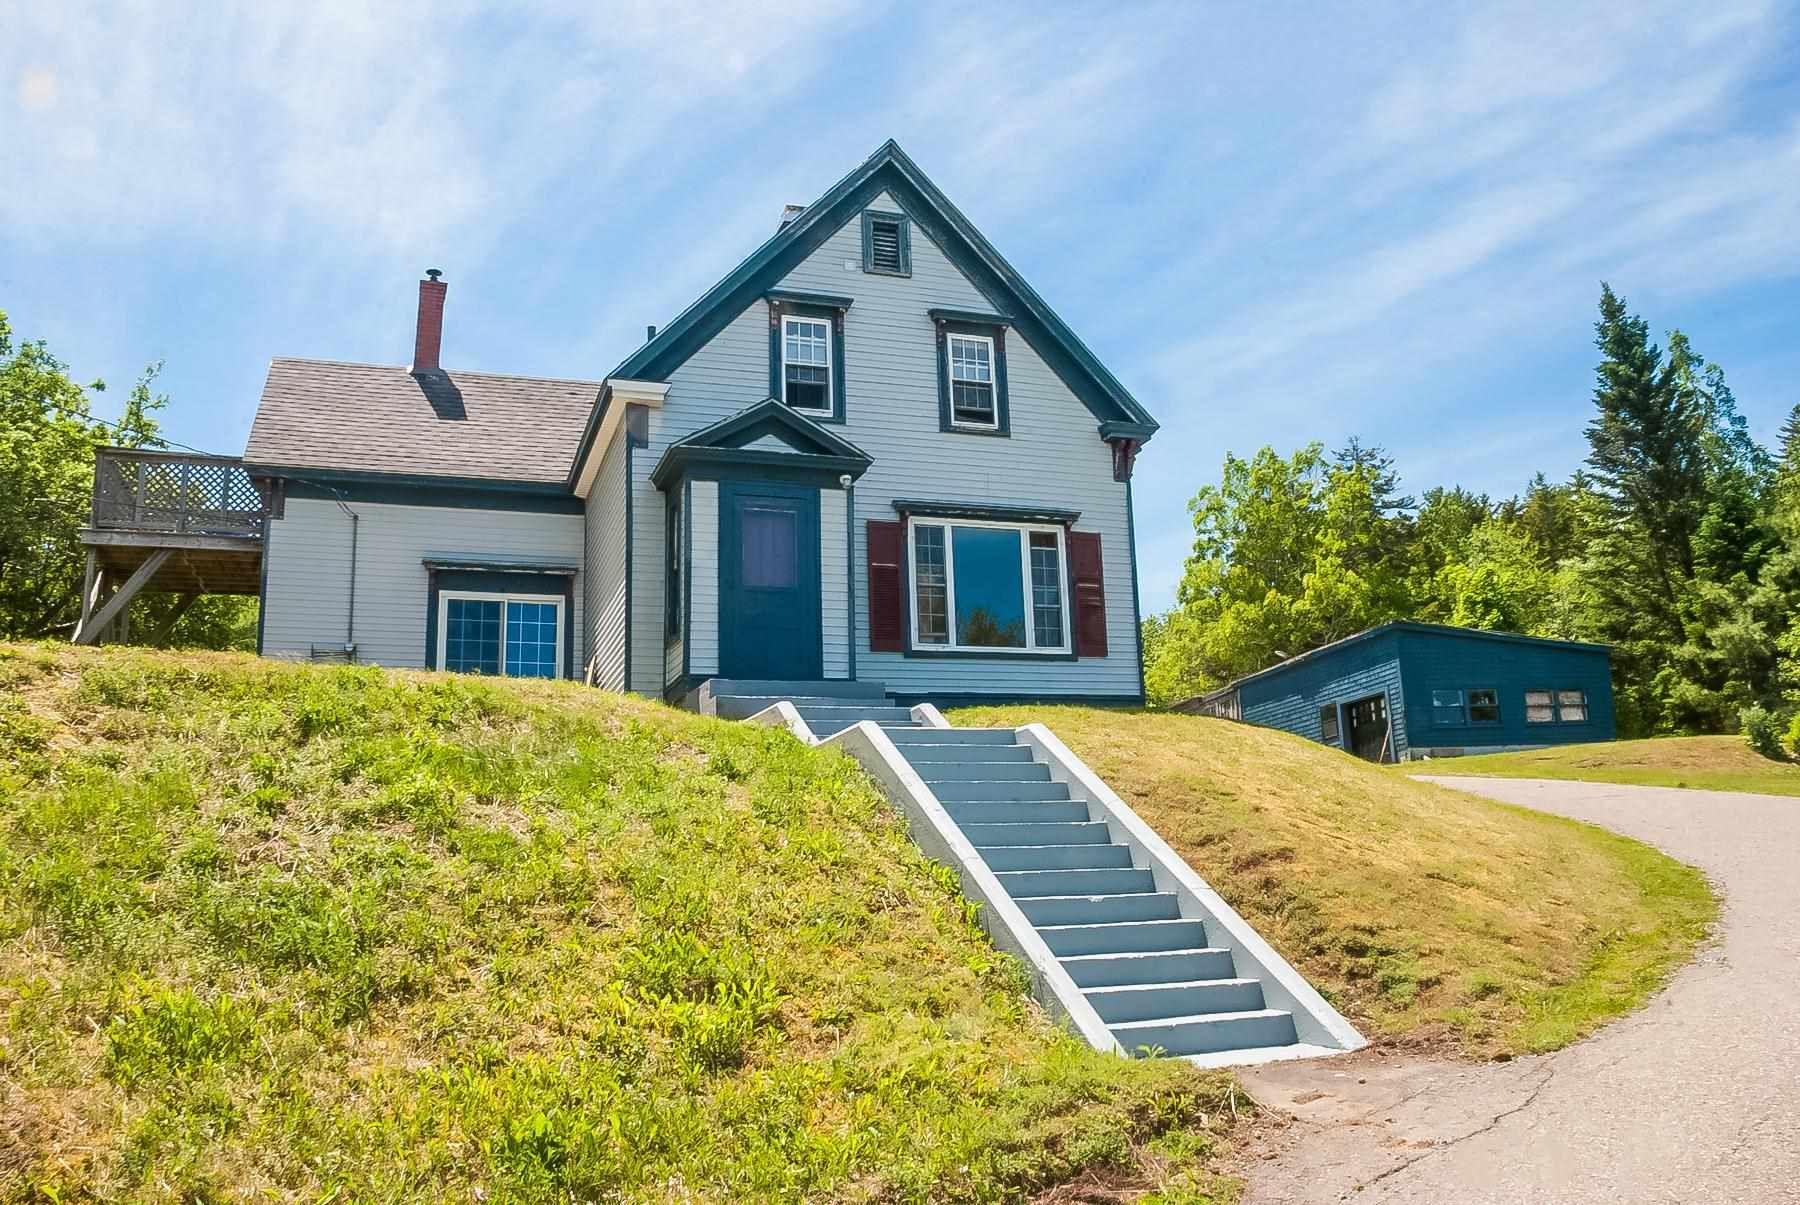 Main Photo: 2346 Highway 331 in Pleasantville: 405-Lunenburg County Residential for sale (South Shore)  : MLS®# 202114978